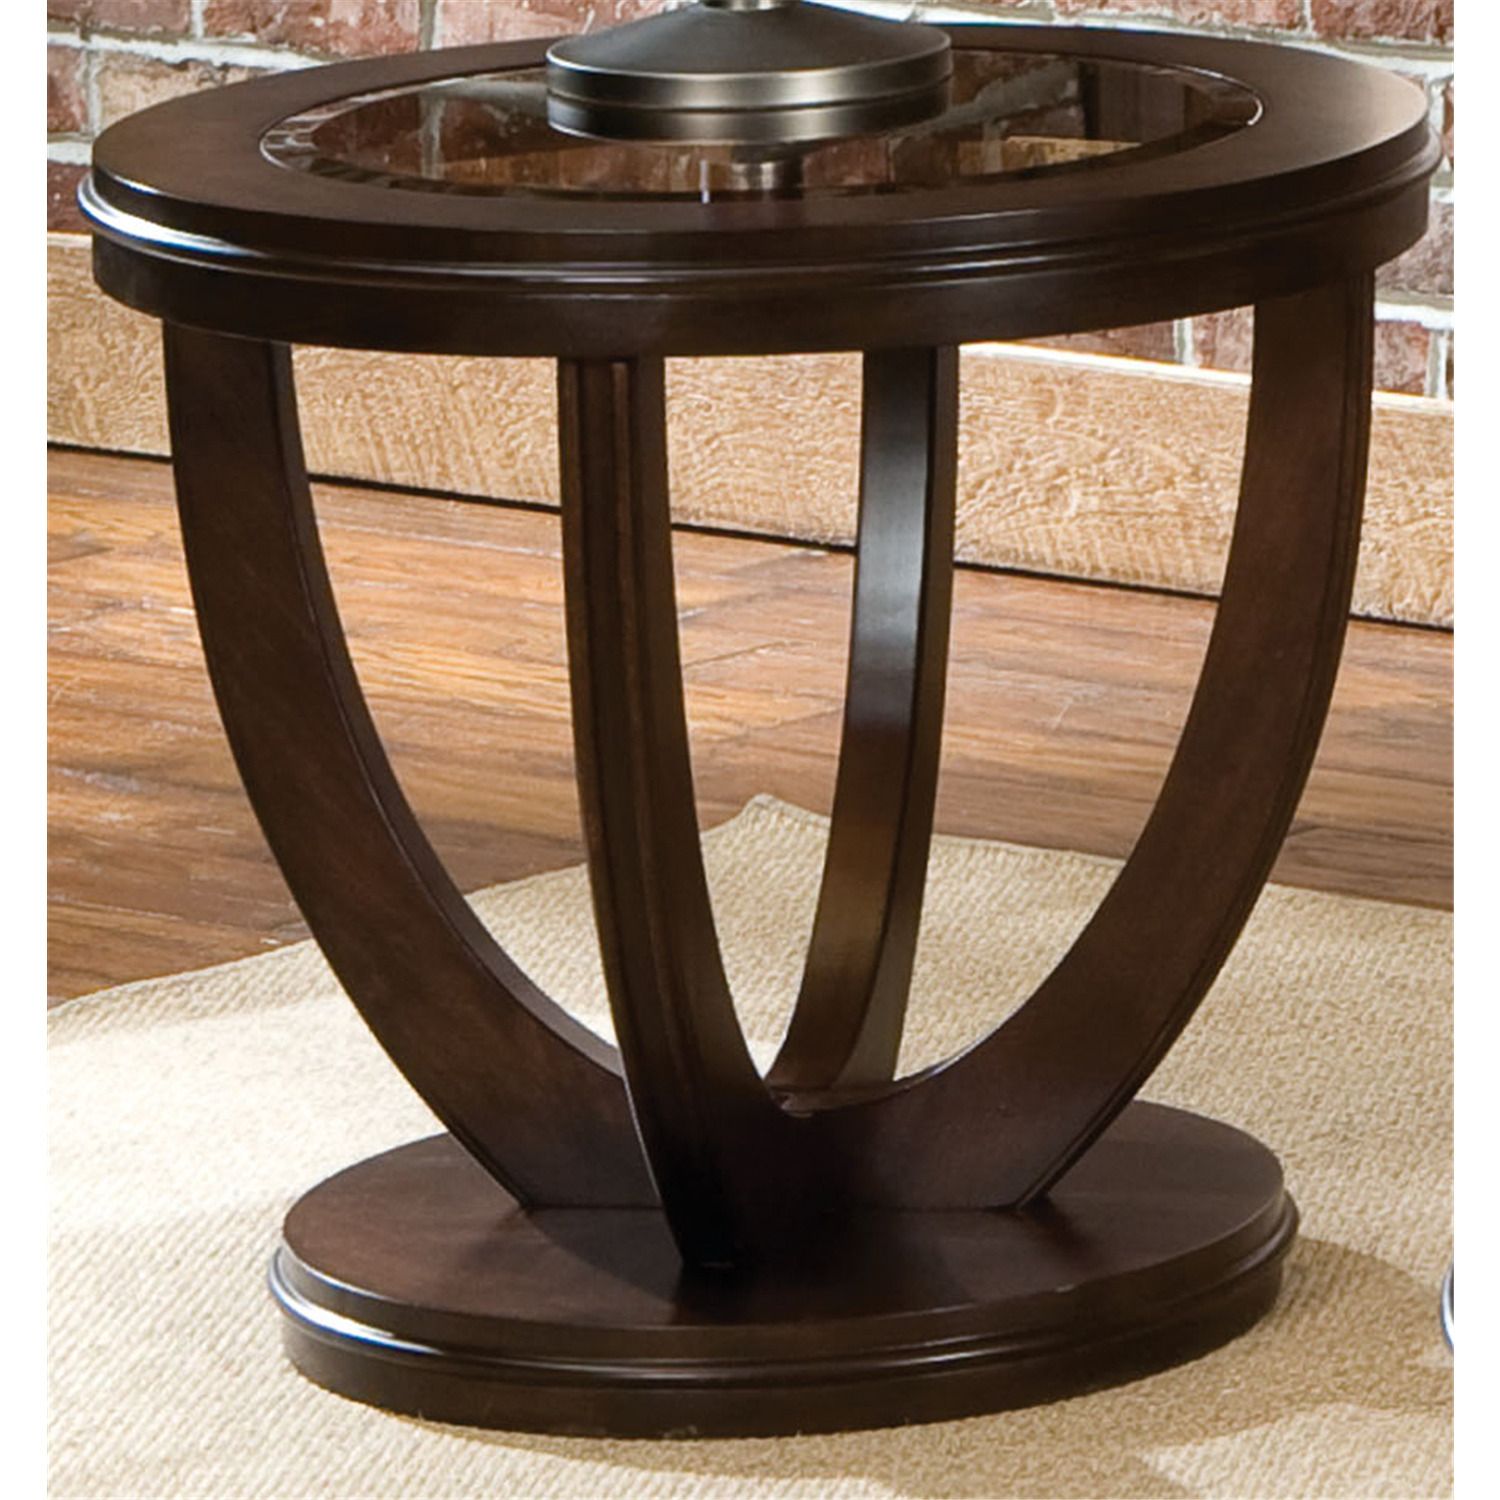 Standard furniture la jolla end round table by oj commerce for Round table 99